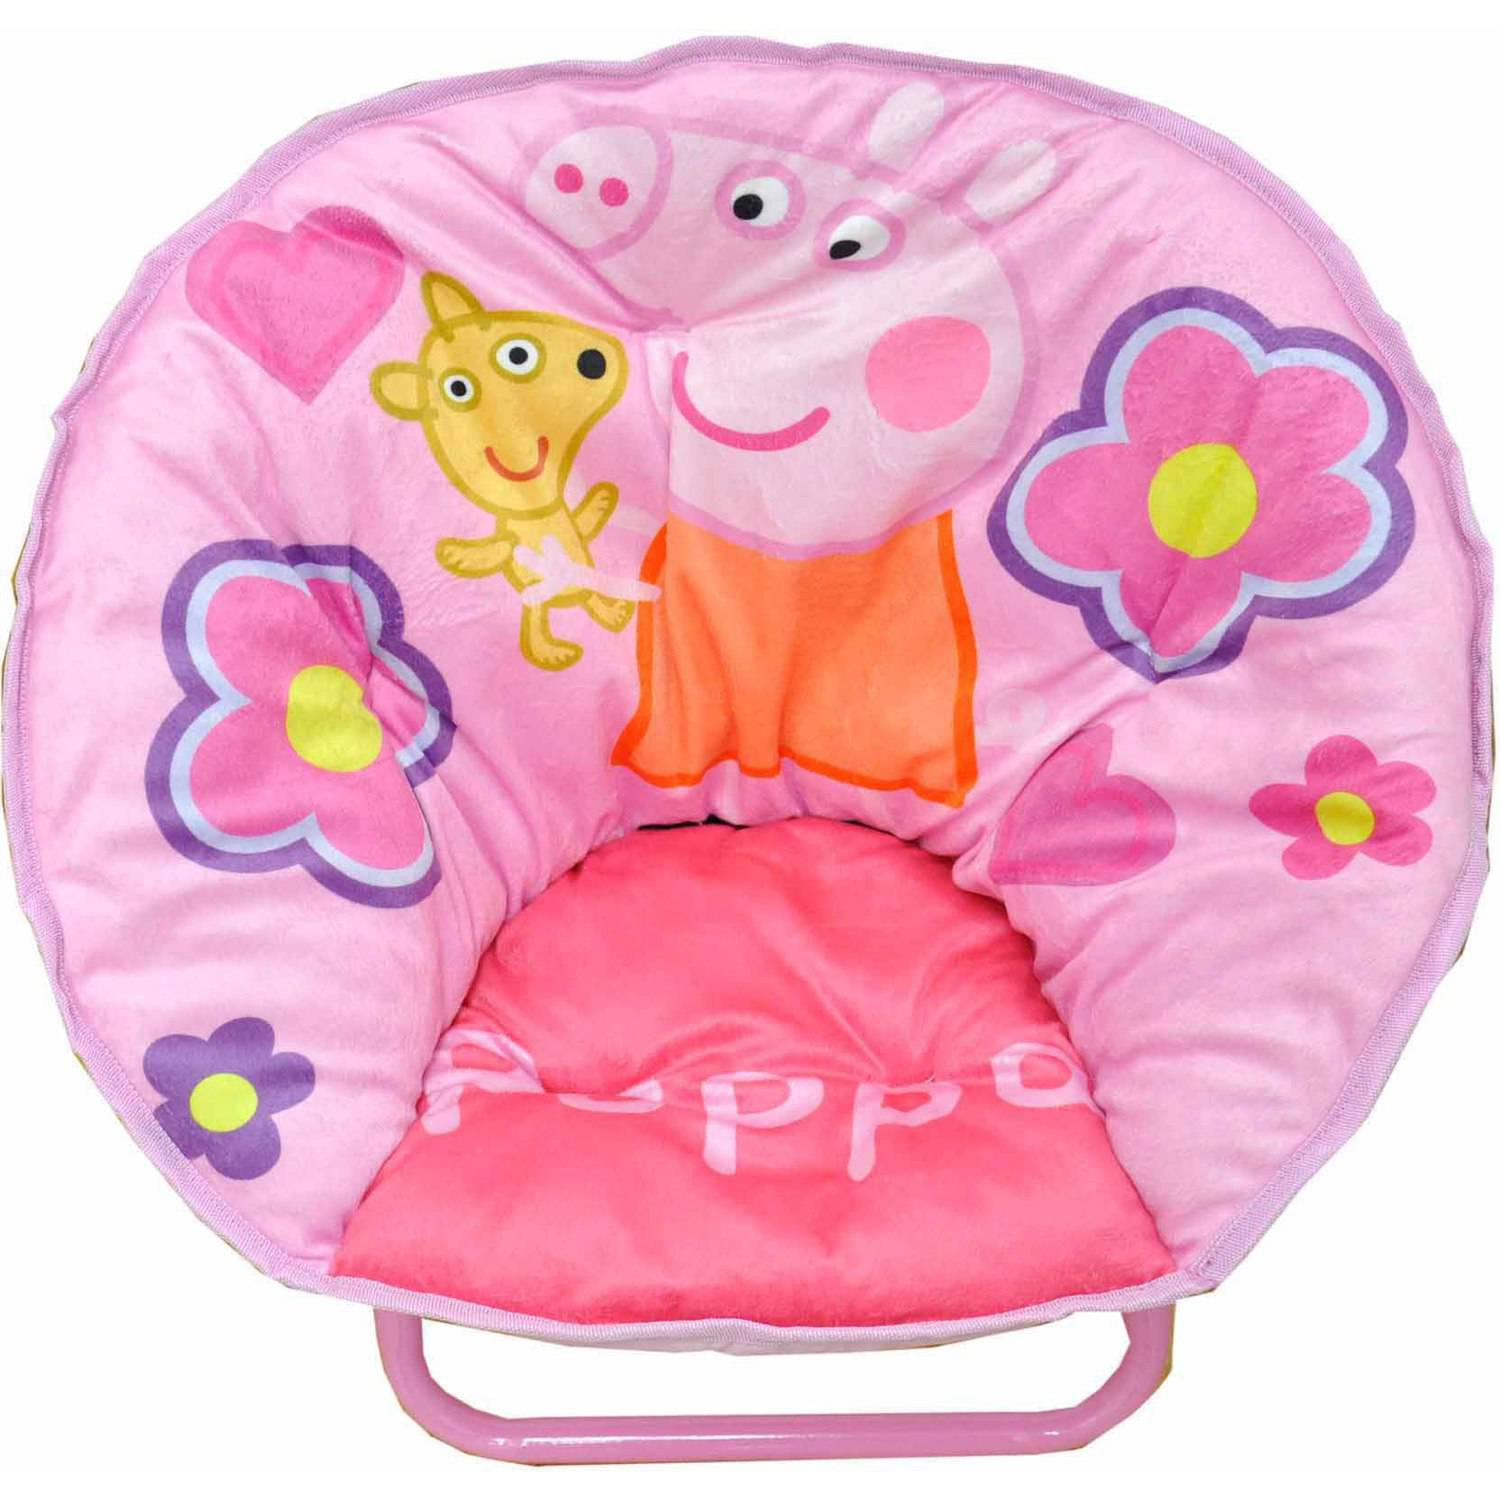 Marvelous Better Then Muddy Puddles Peppa Pig Total Room Decor Ocoug Best Dining Table And Chair Ideas Images Ocougorg